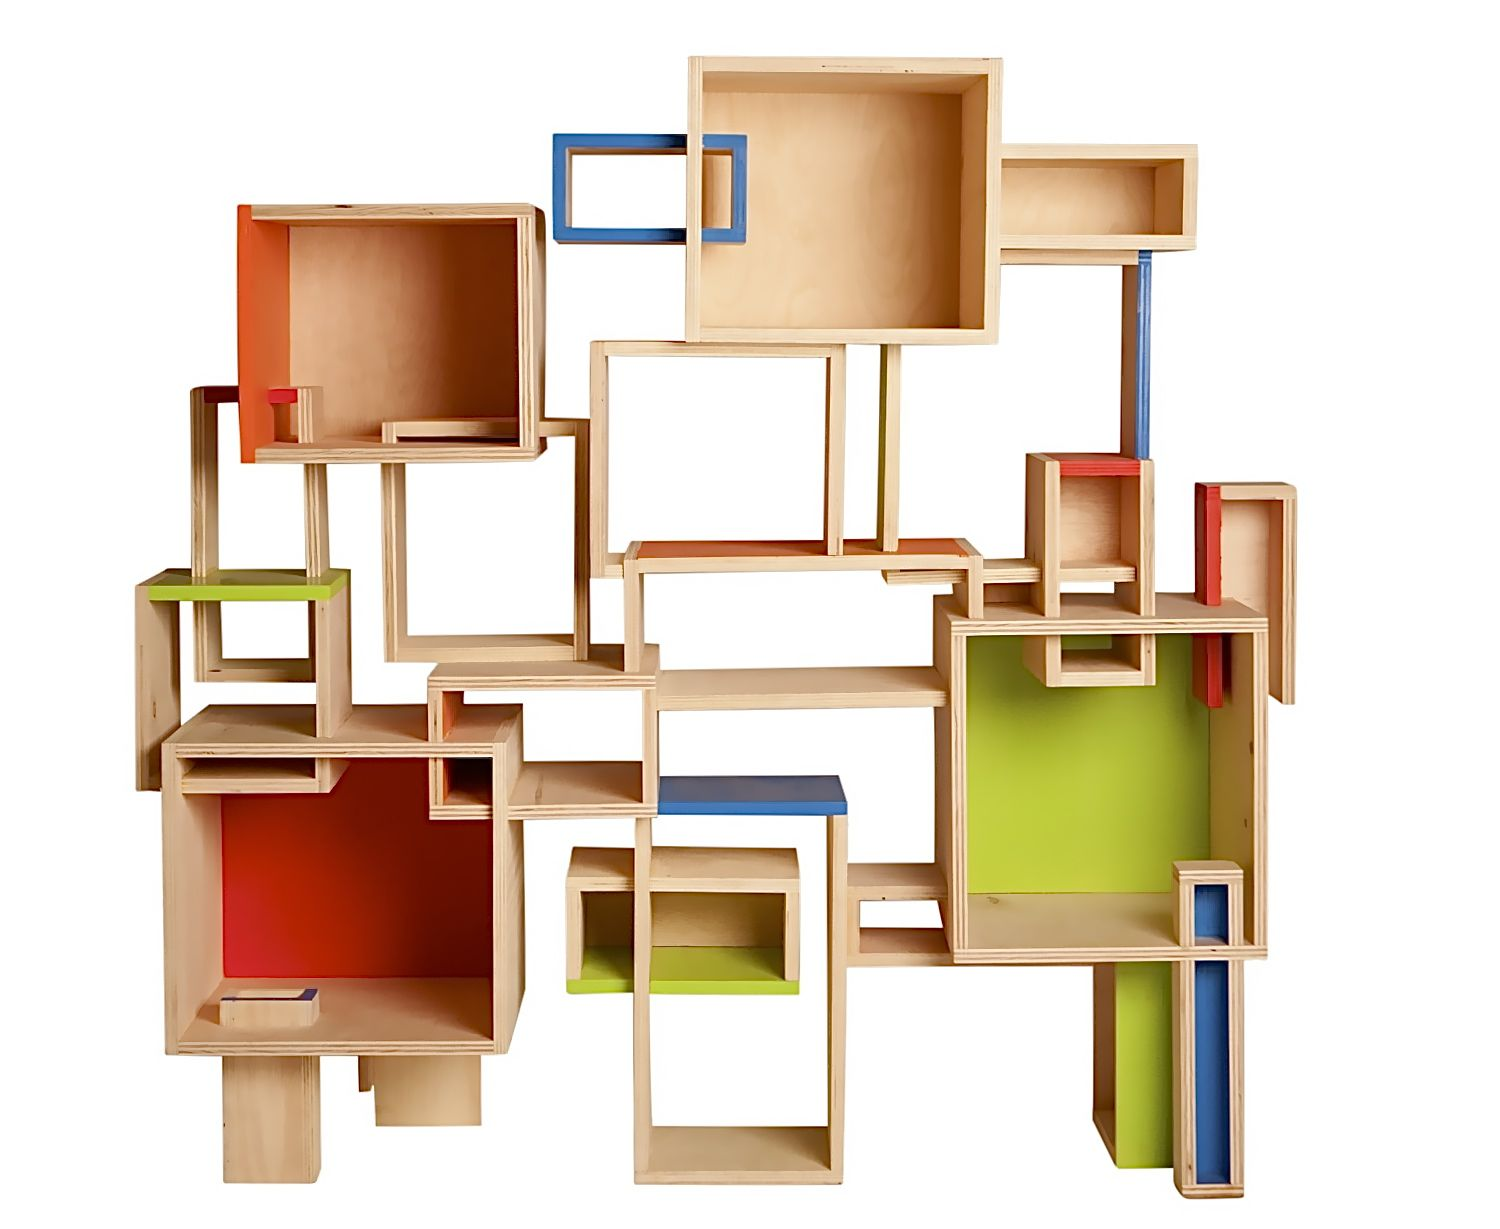 Modular And One-of-a-kind Geometric Bookcase! Designed And